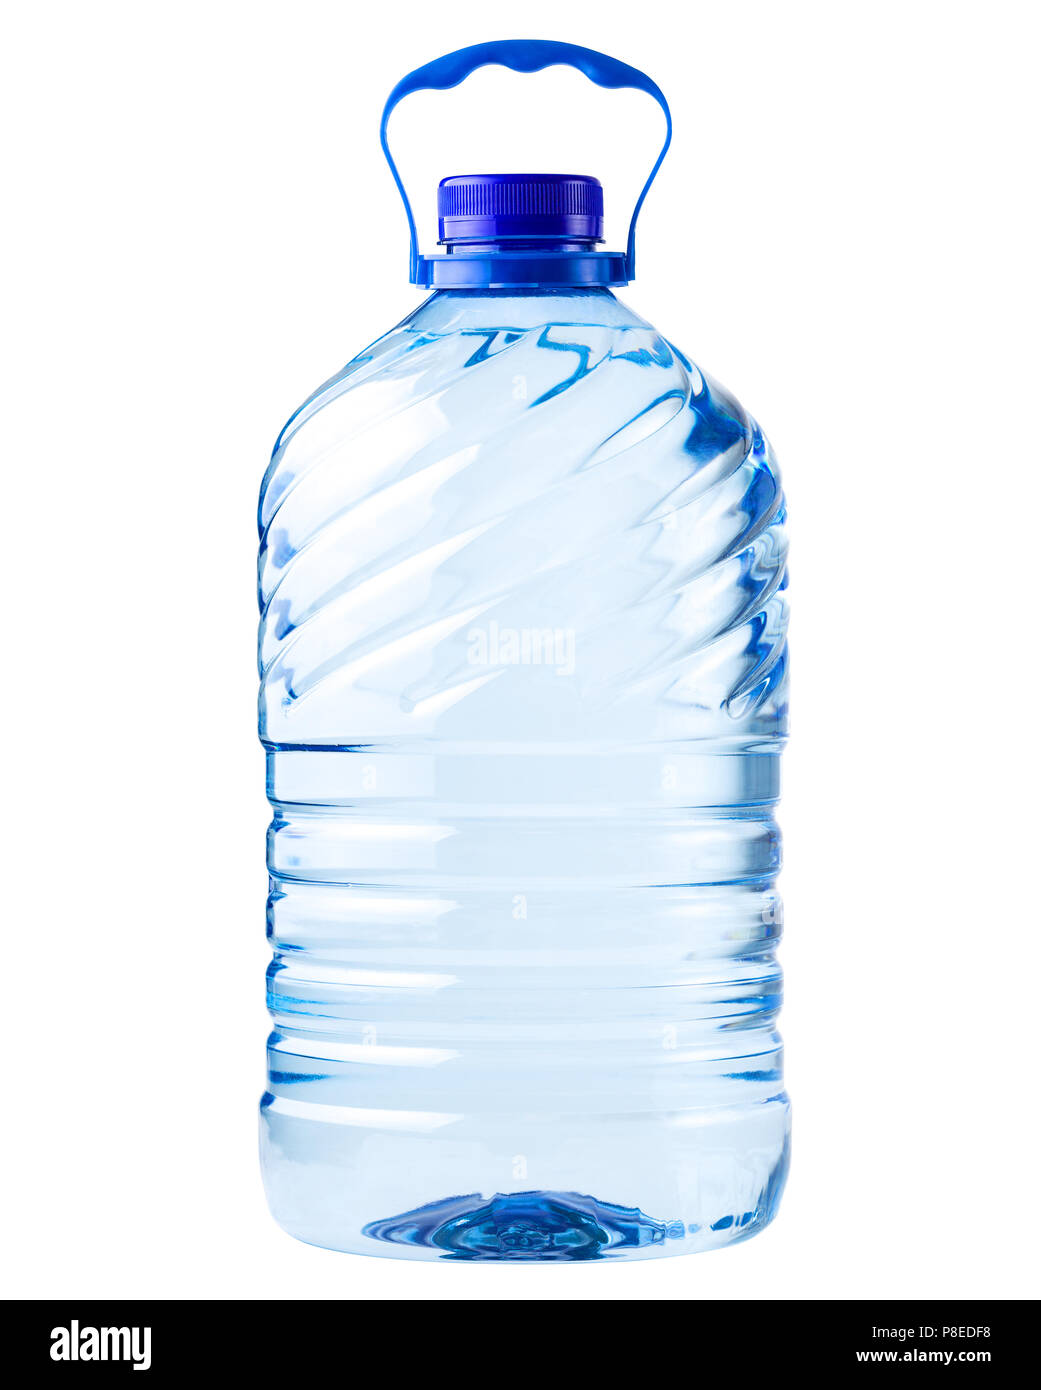 Large Bottle Mineral Water Isolated Stock Photos Amp Large Bottle Mineral Water Isolated